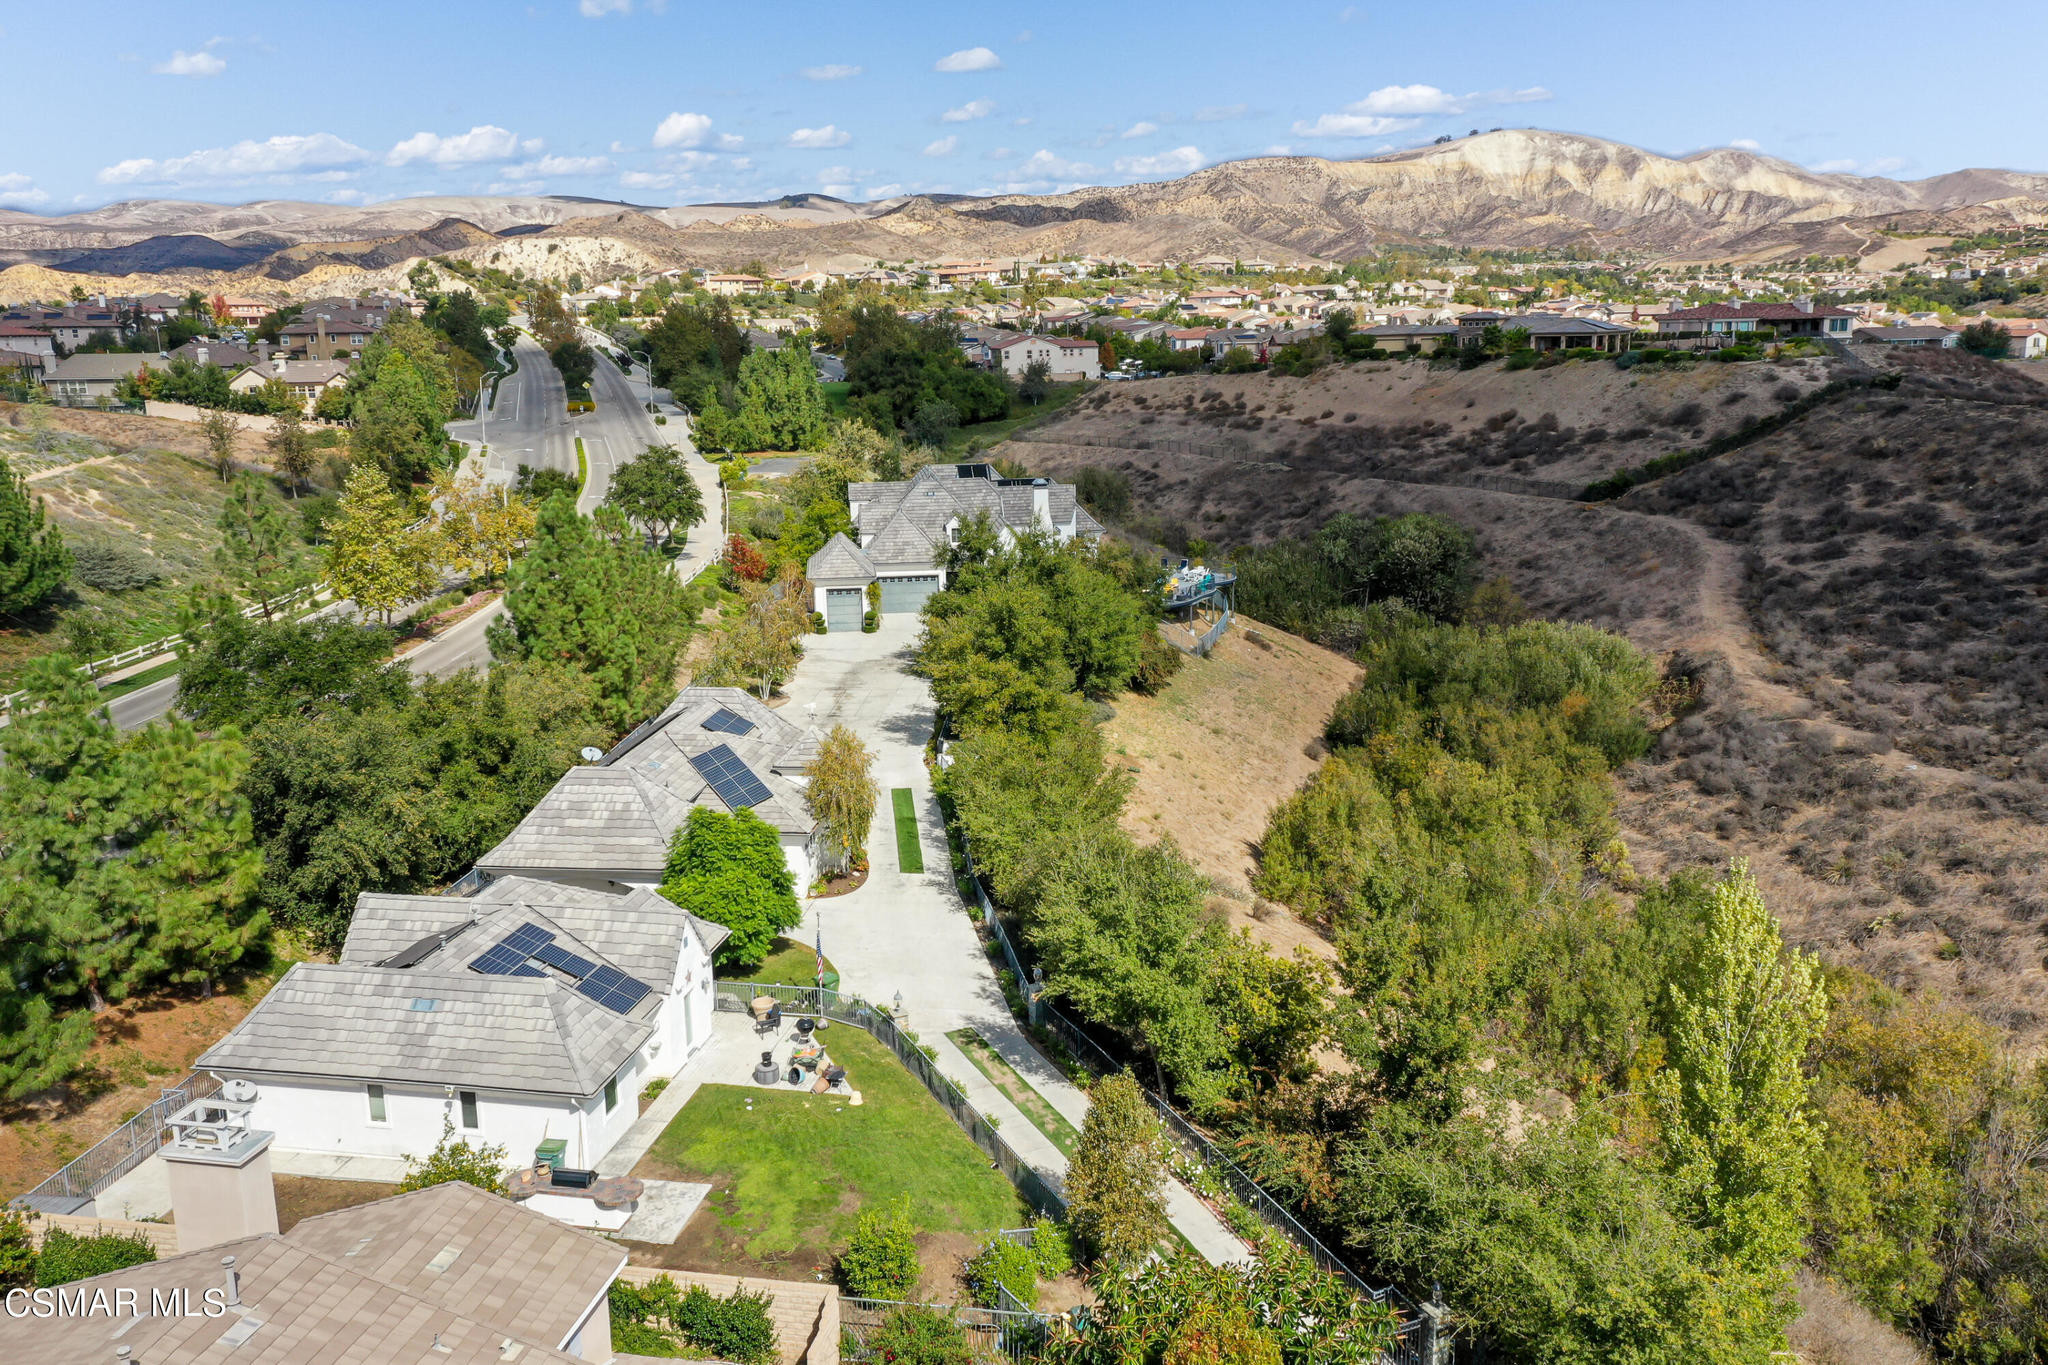 2-Story House In Simi Valley Town Center